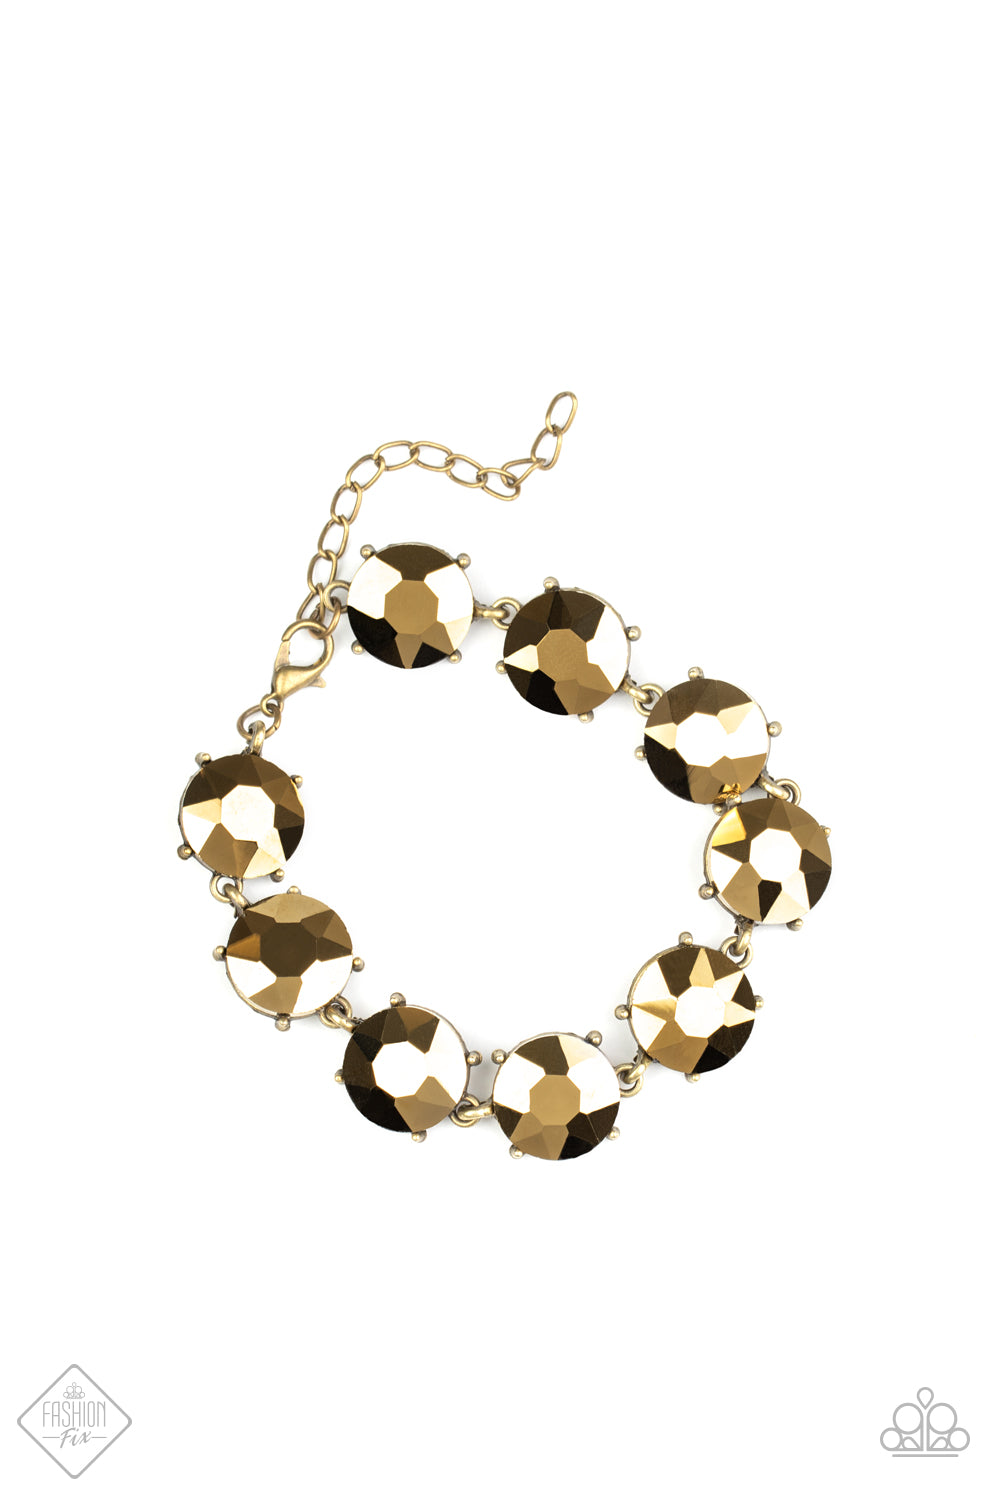 Paparazzi Bracelet  Fashion Fix Aug2020 ~ Fabulously Flashy - Brass